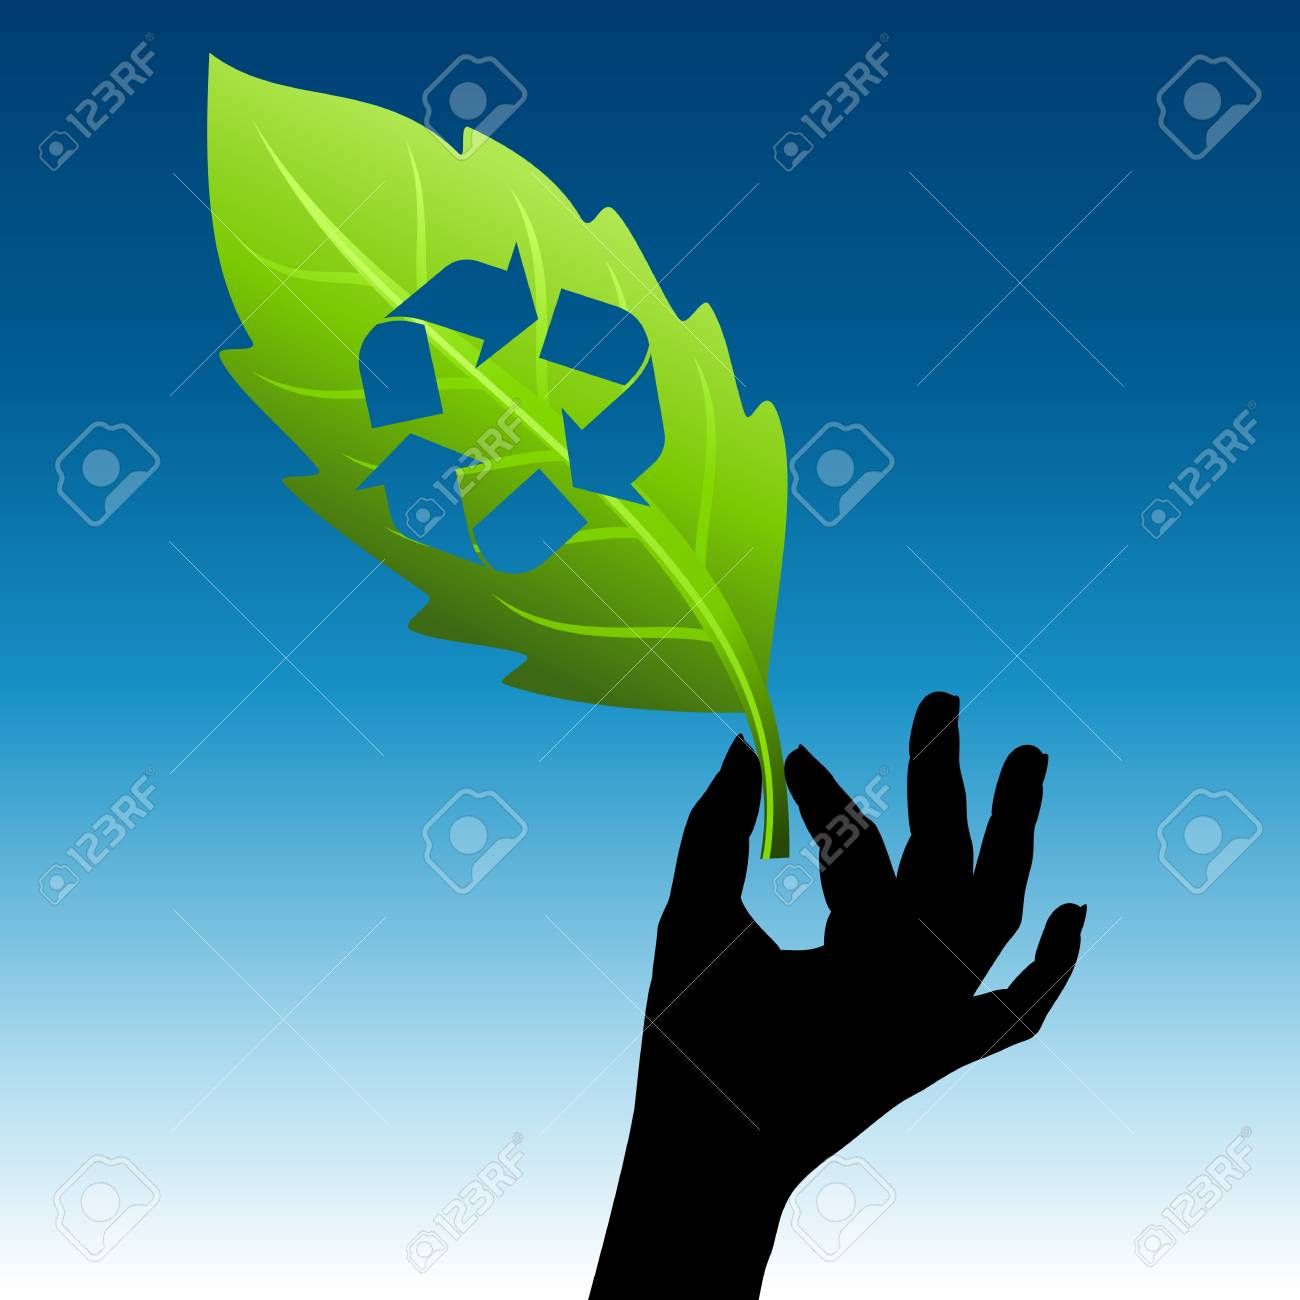 save environment idea Stock Vector - 17635112